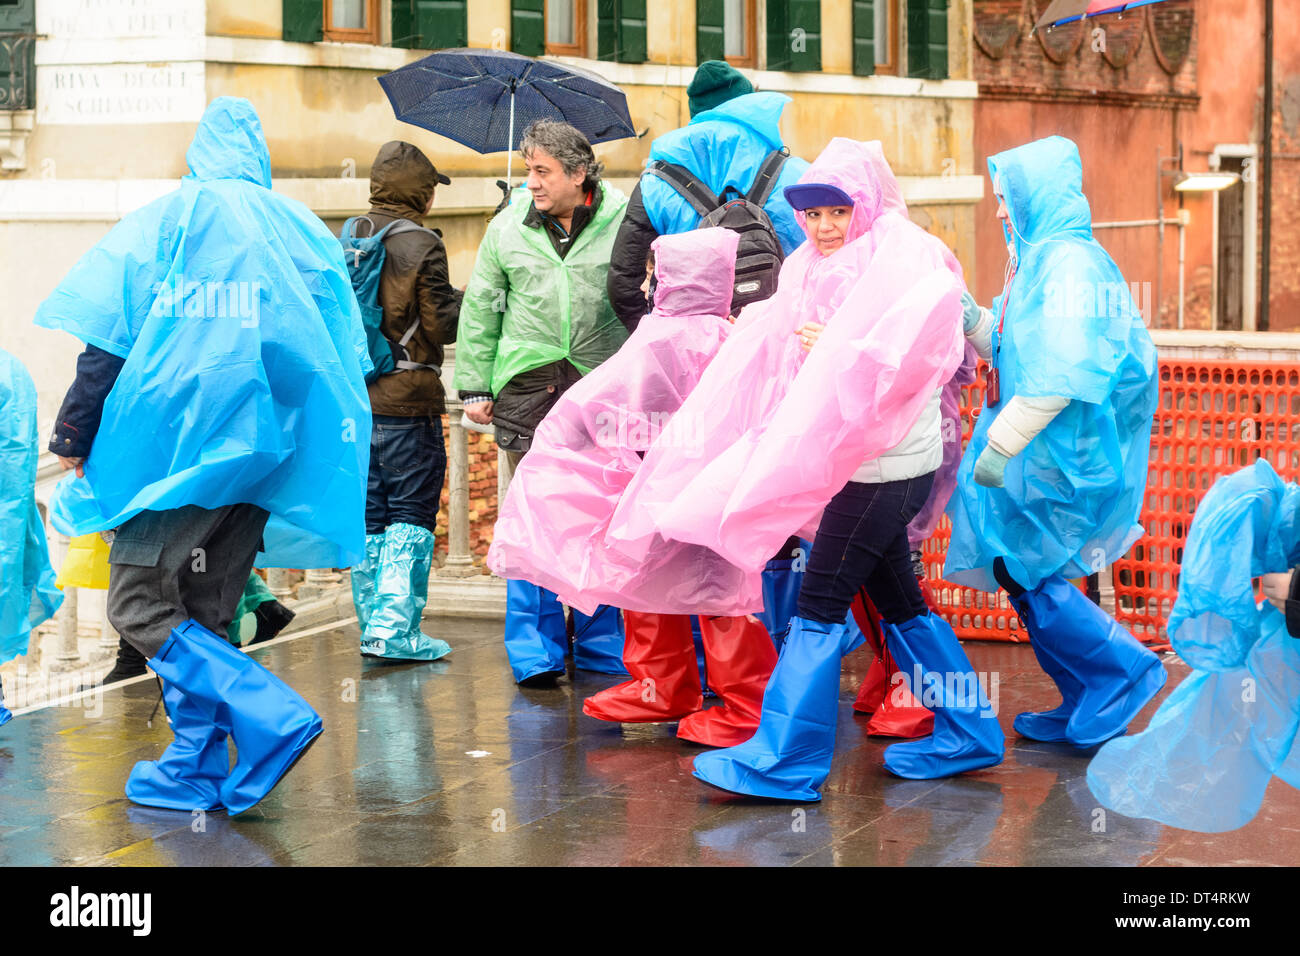 Venice, Italy. People in wet weather clothing, rain ponchos, and rain boots, standing on bridge during rain. - Stock Image